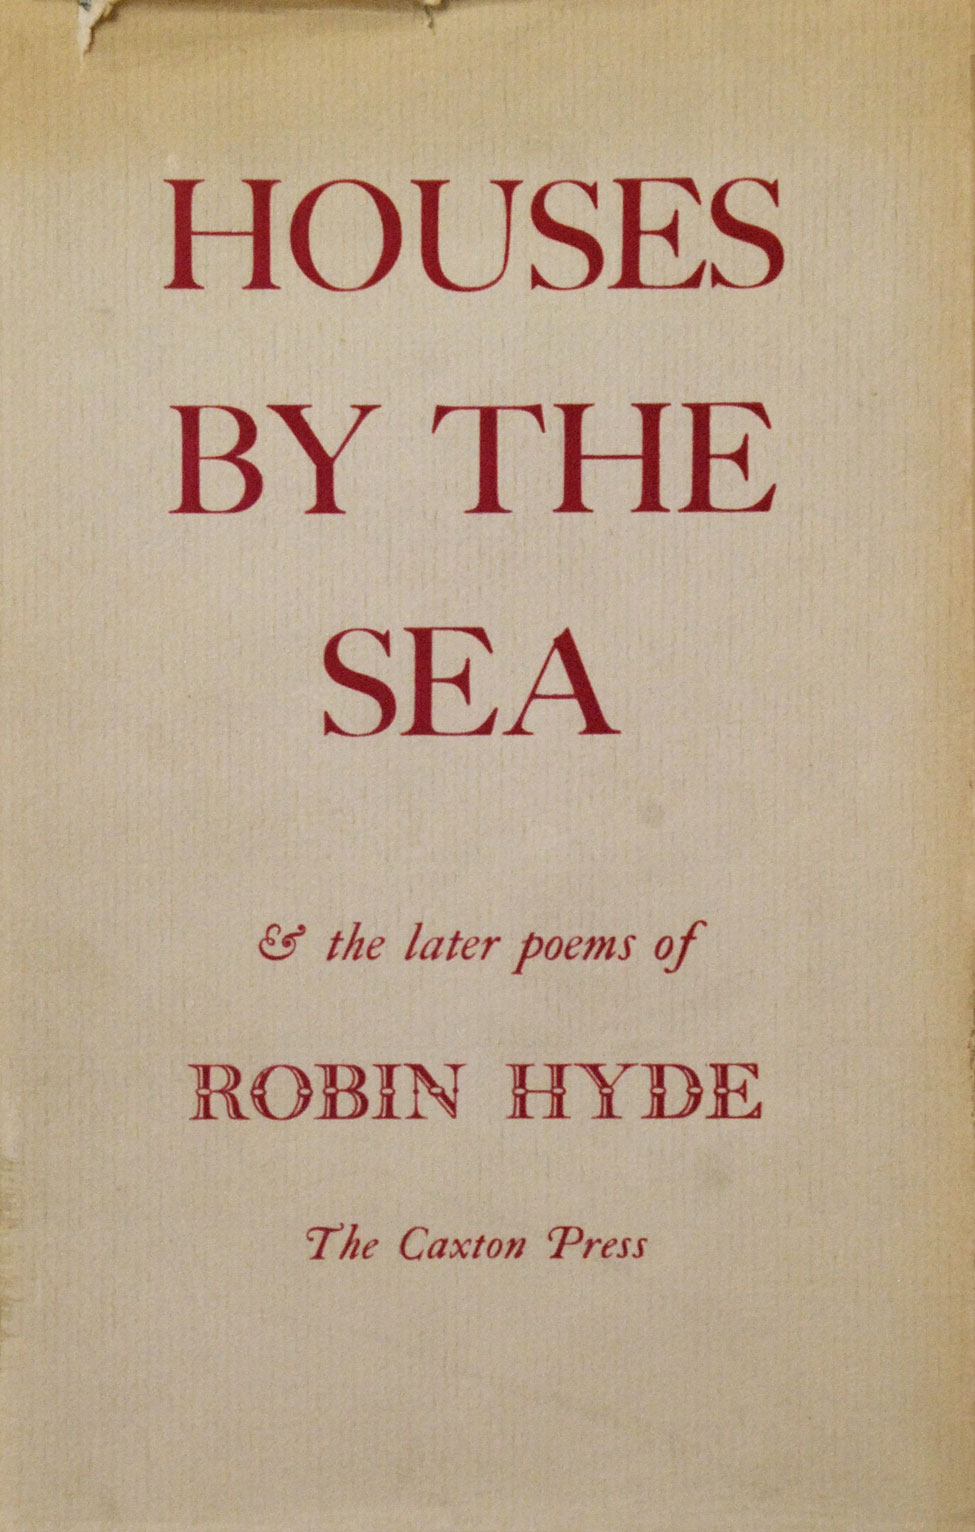 Robin Hyde. Houses by the Sea & the Later Poems. <i>Christchurch: The Caxton Press, 1952.</i>